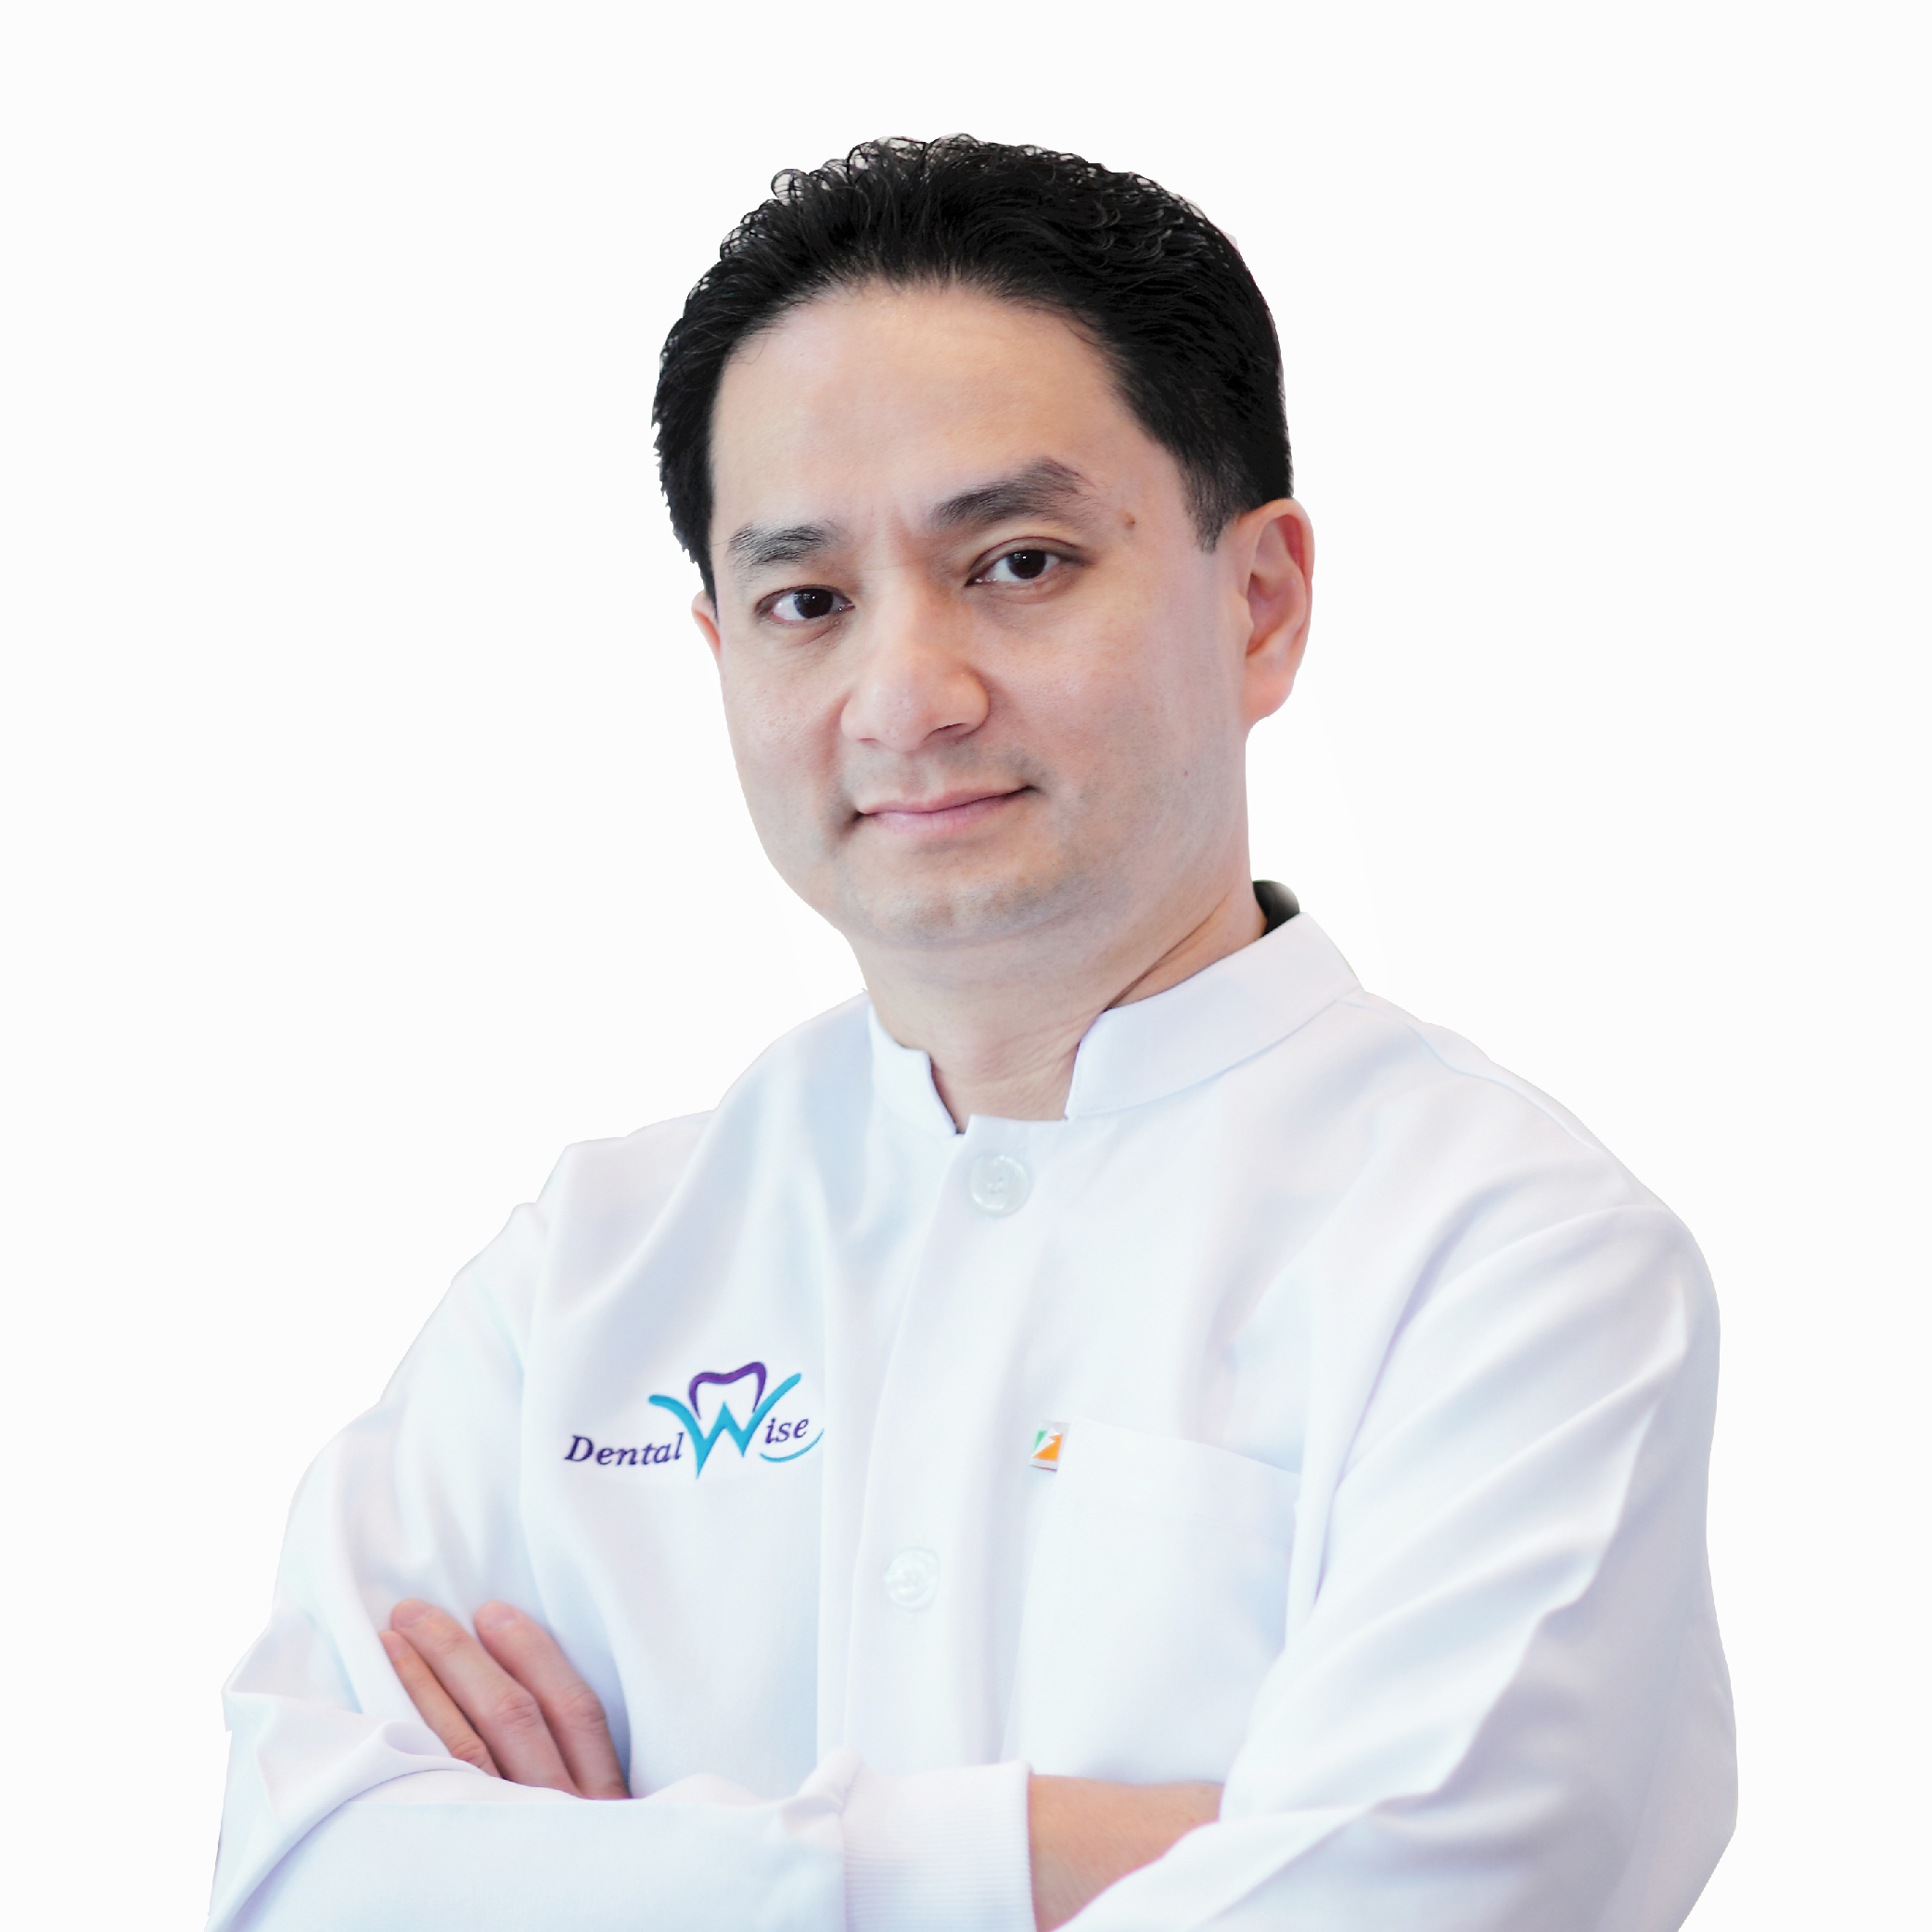 DR. NAPONG PUAPORNPONG